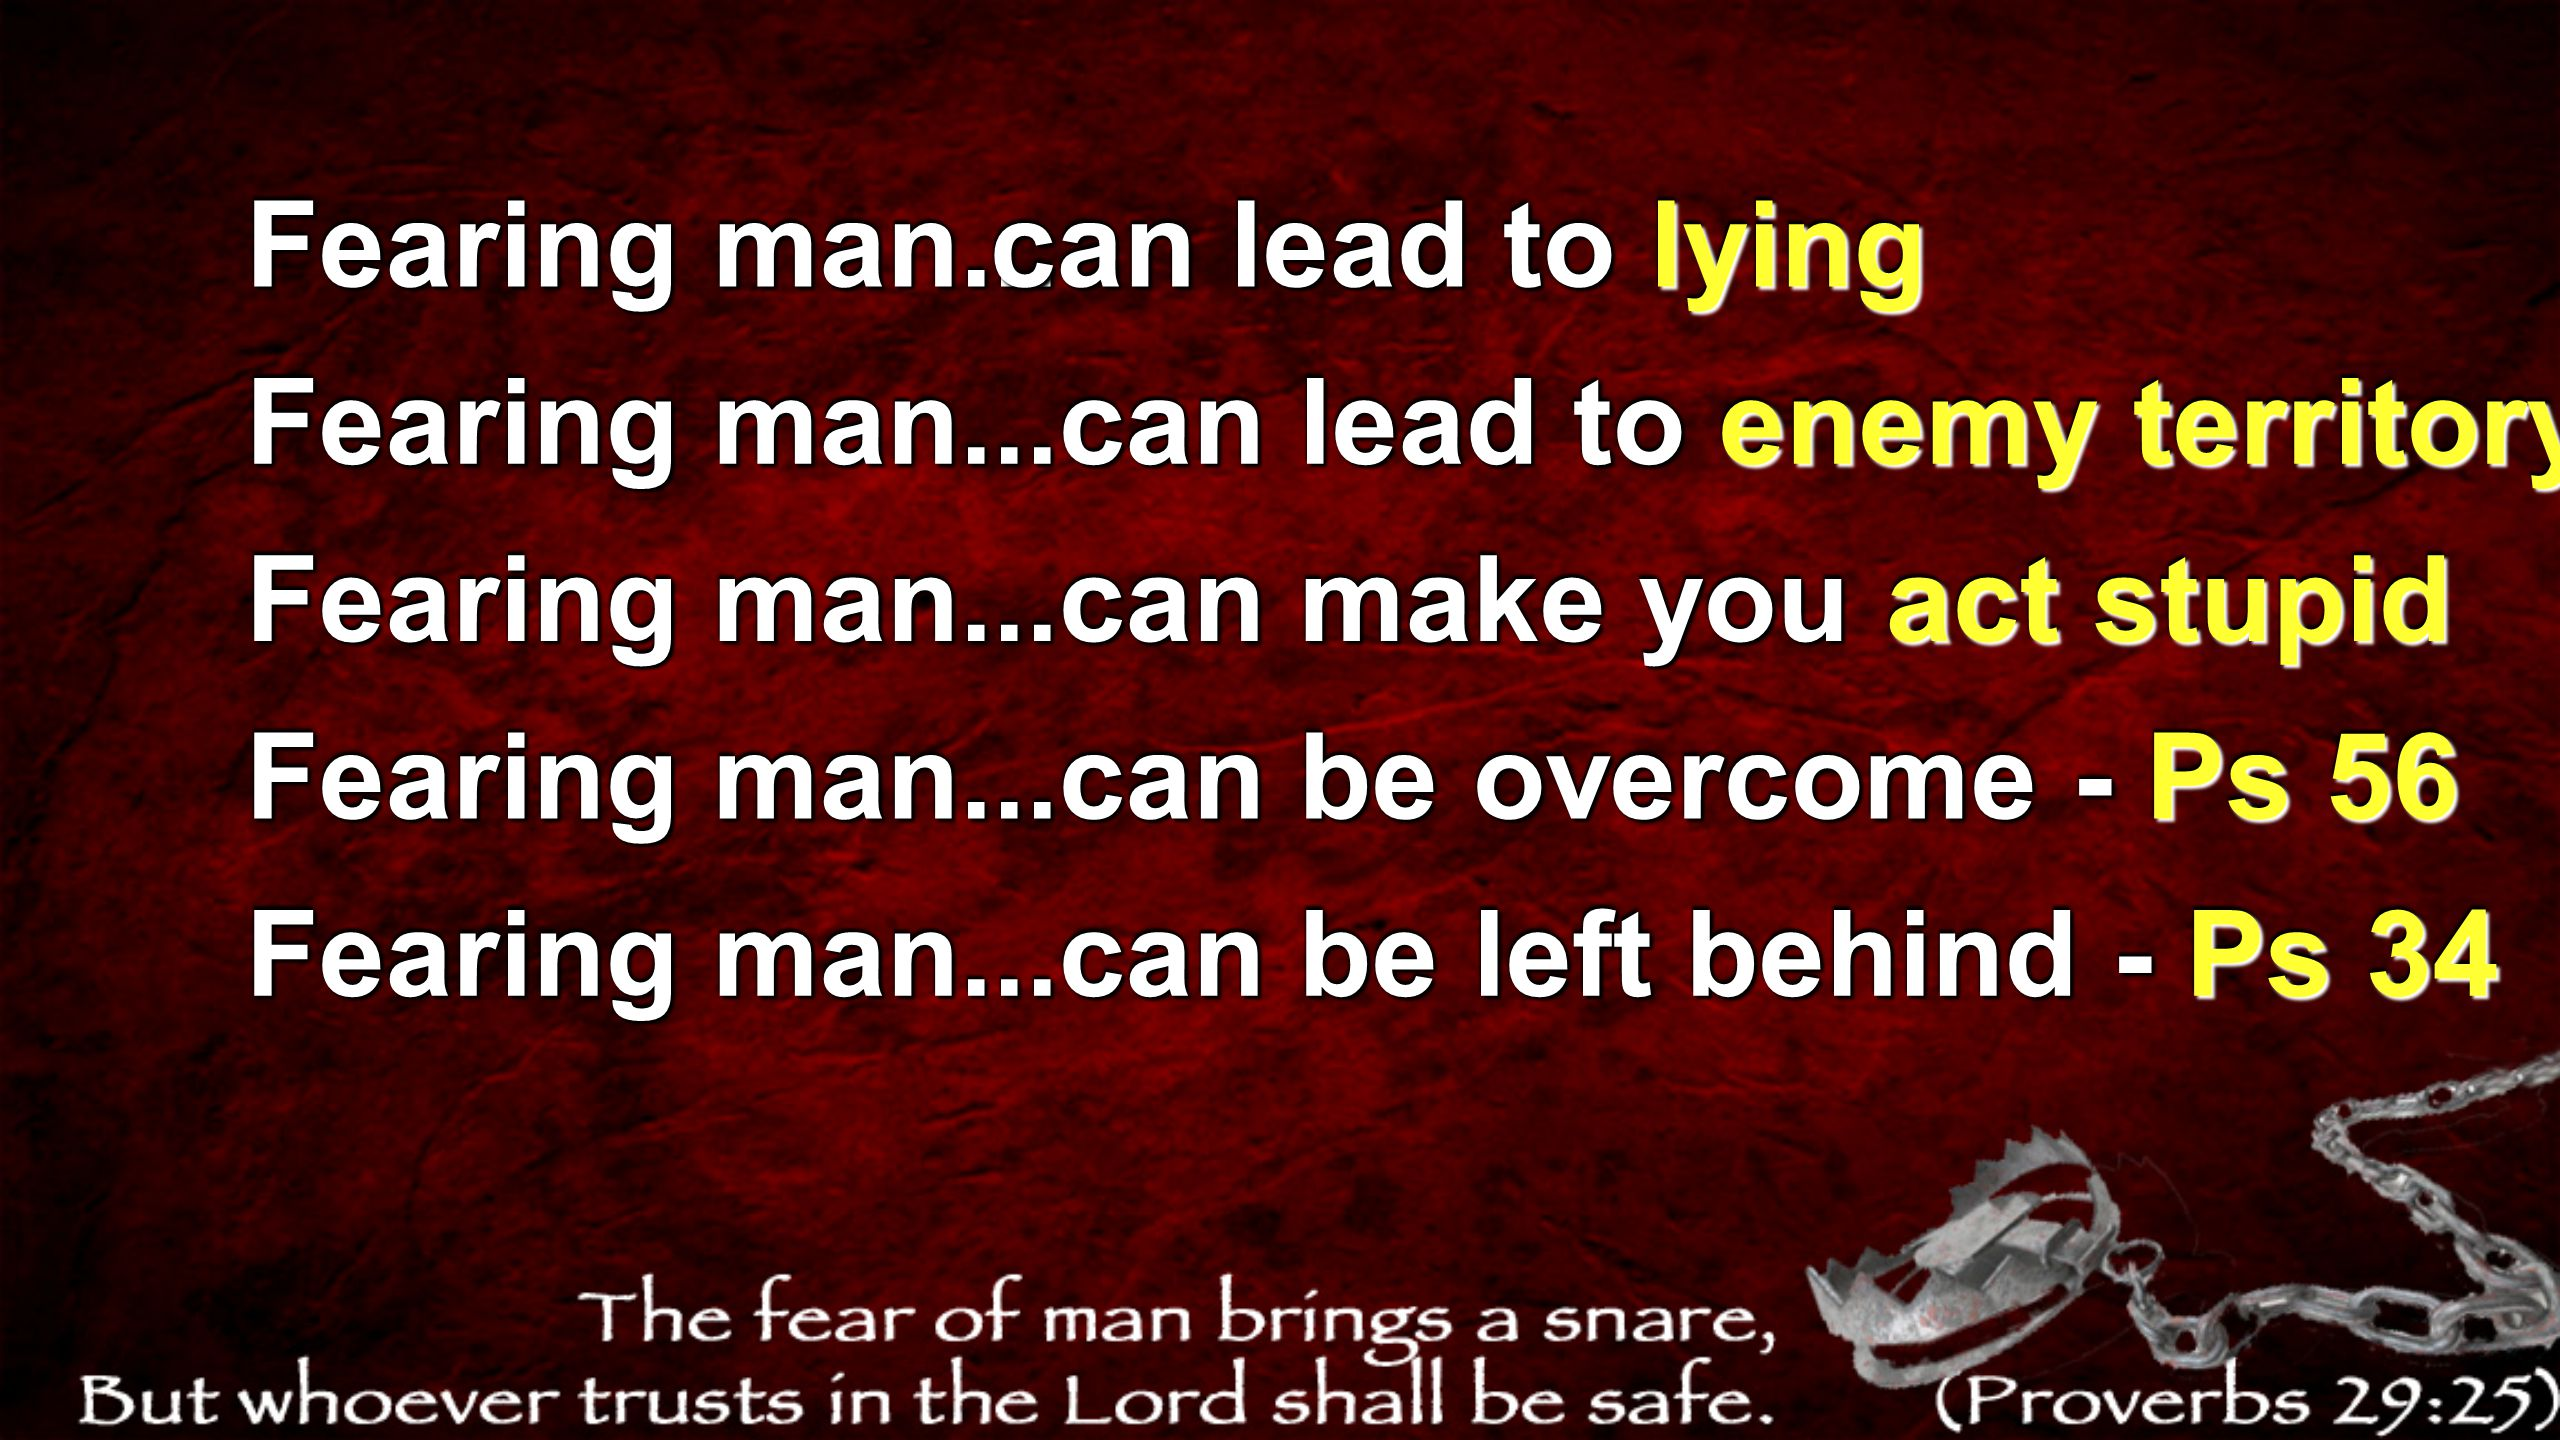 Fearing man... can lead to lying Fearing man...can lead to enemy territory Fearing man...can make you act stupid Fearing man...can be overcome - Ps 56